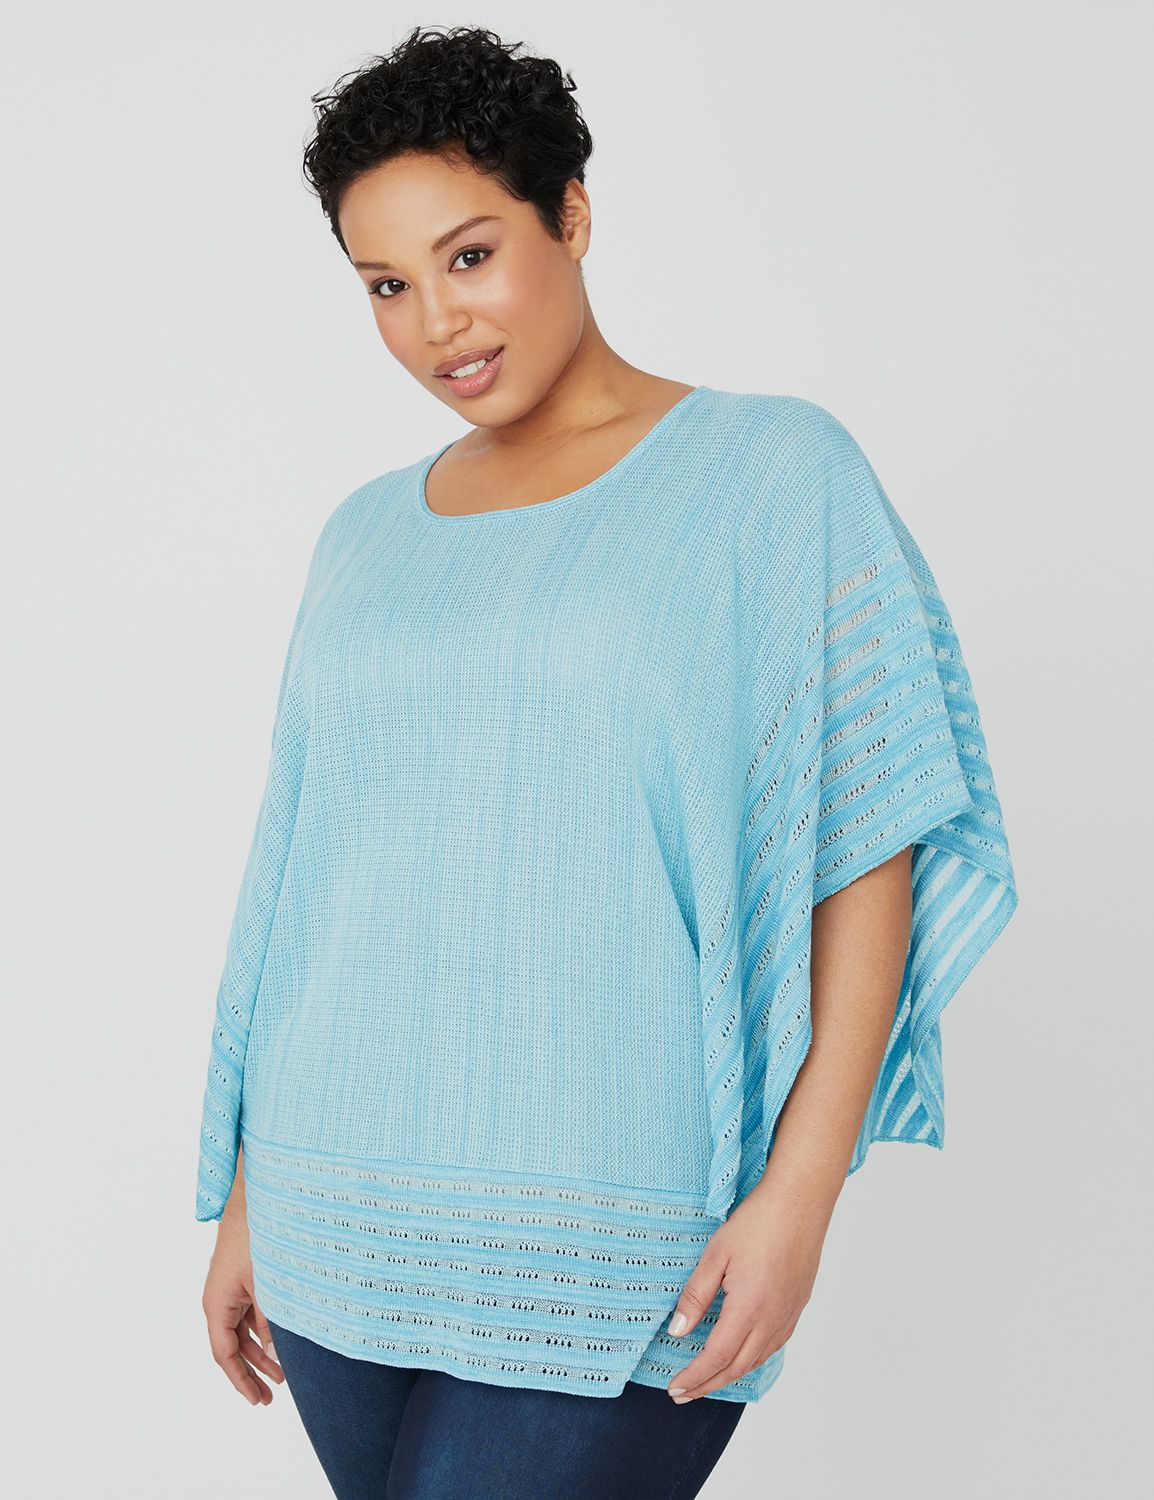 Rippled Edge Sweater 1083897 KimonoPullover 212 MP-300107439